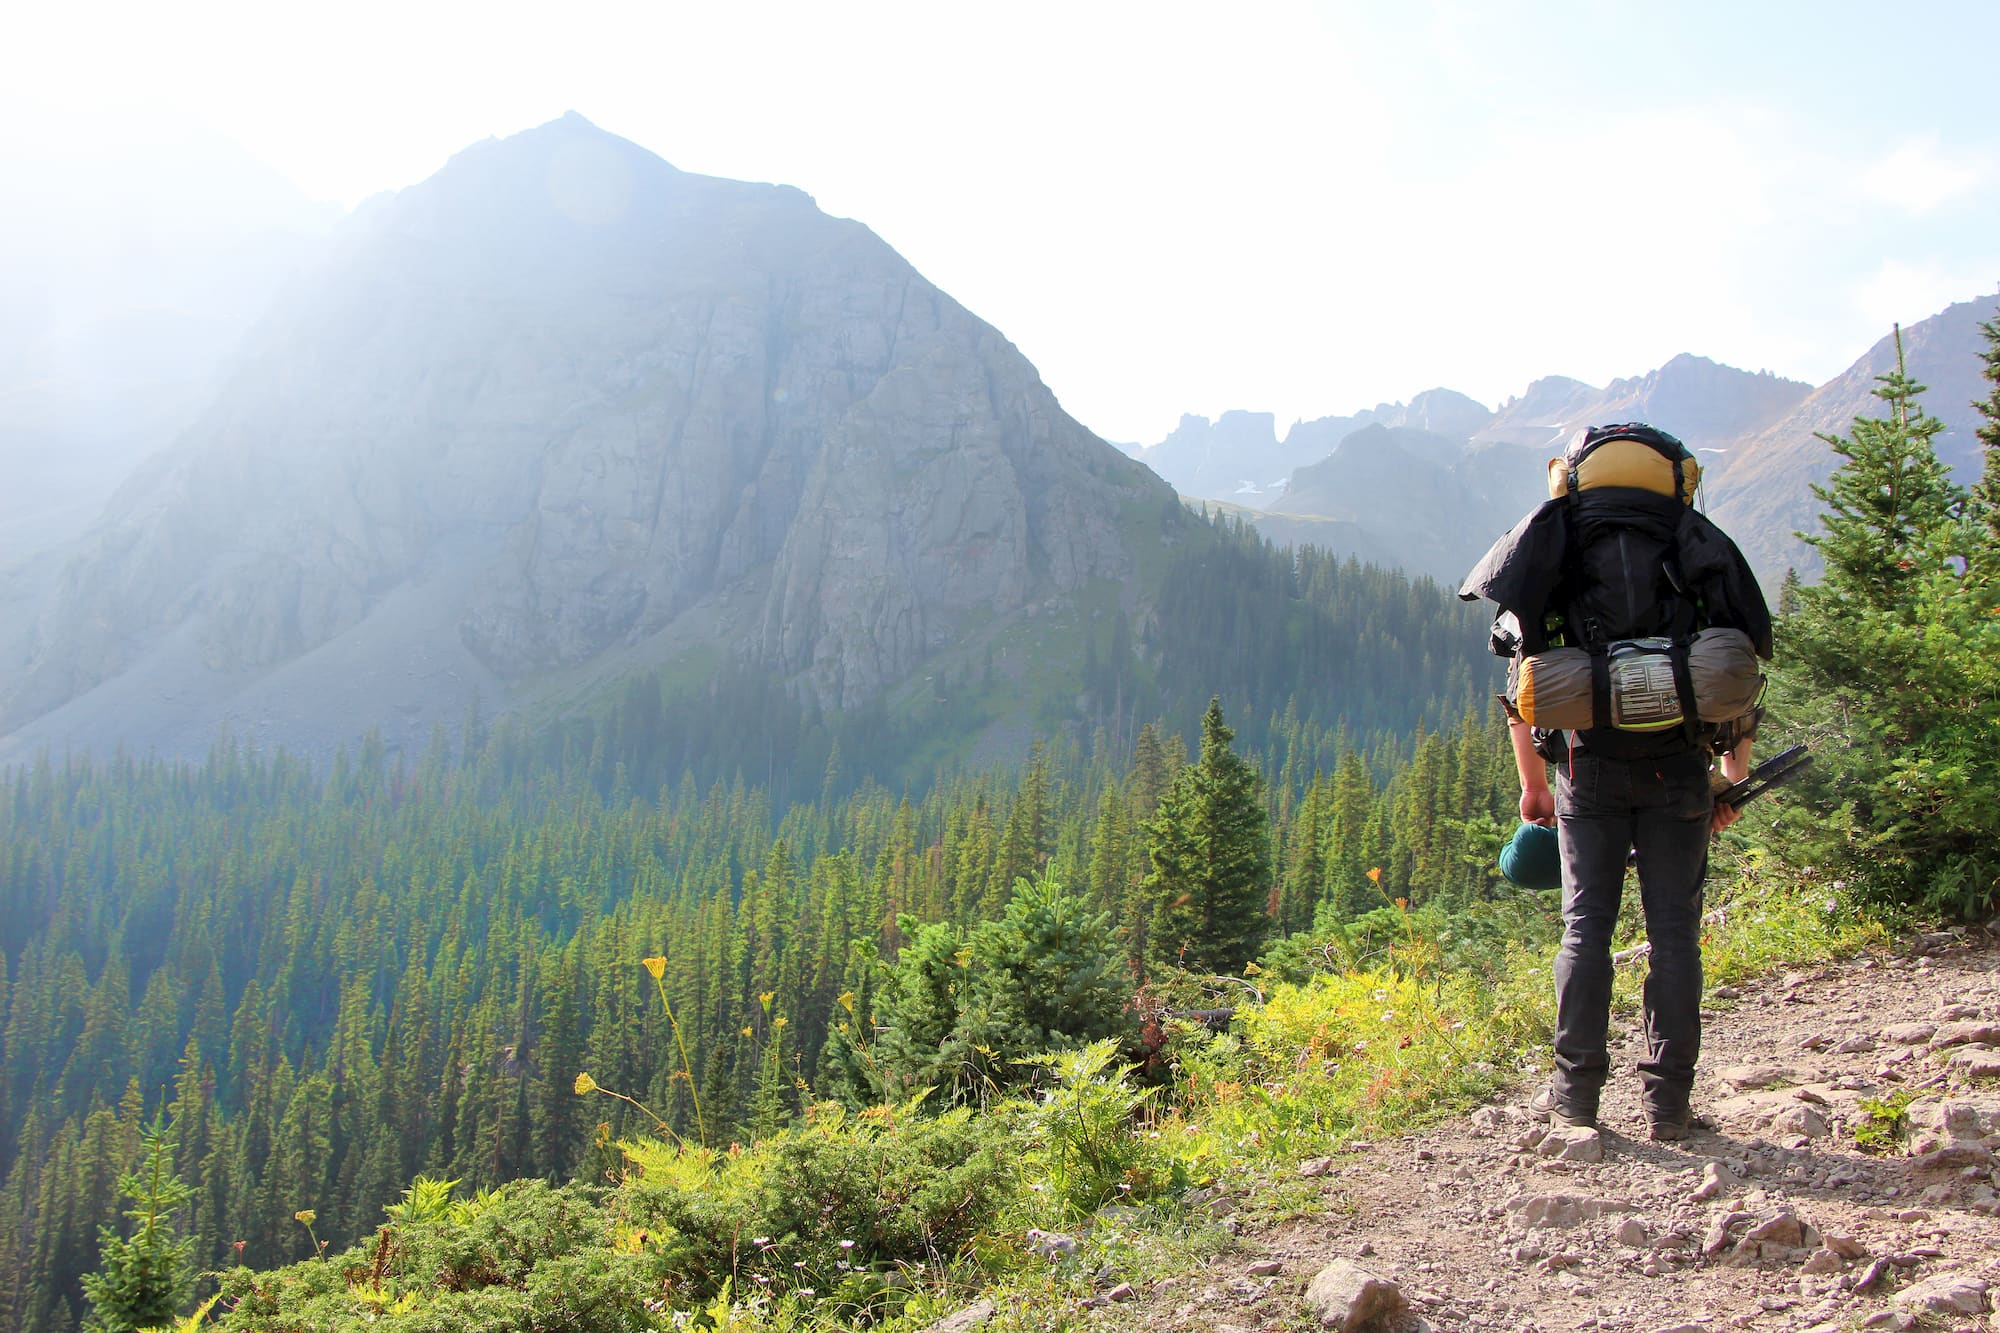 Backpacker hiking down trail in a forested alpine landscape.